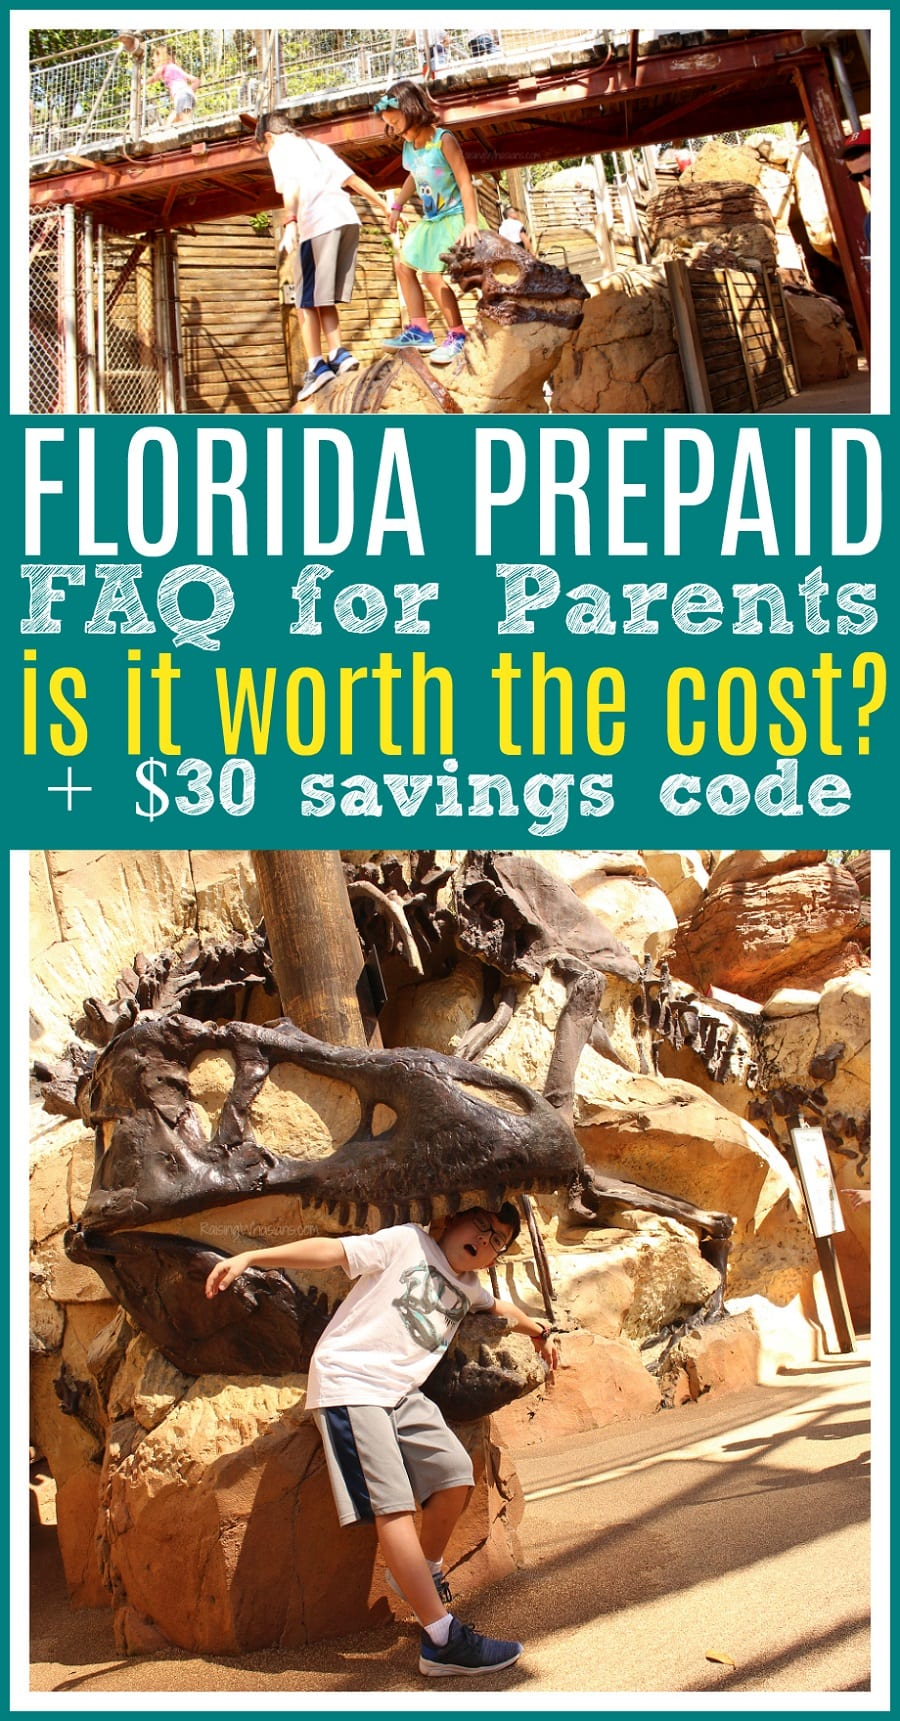 What does Florida prepaid cover